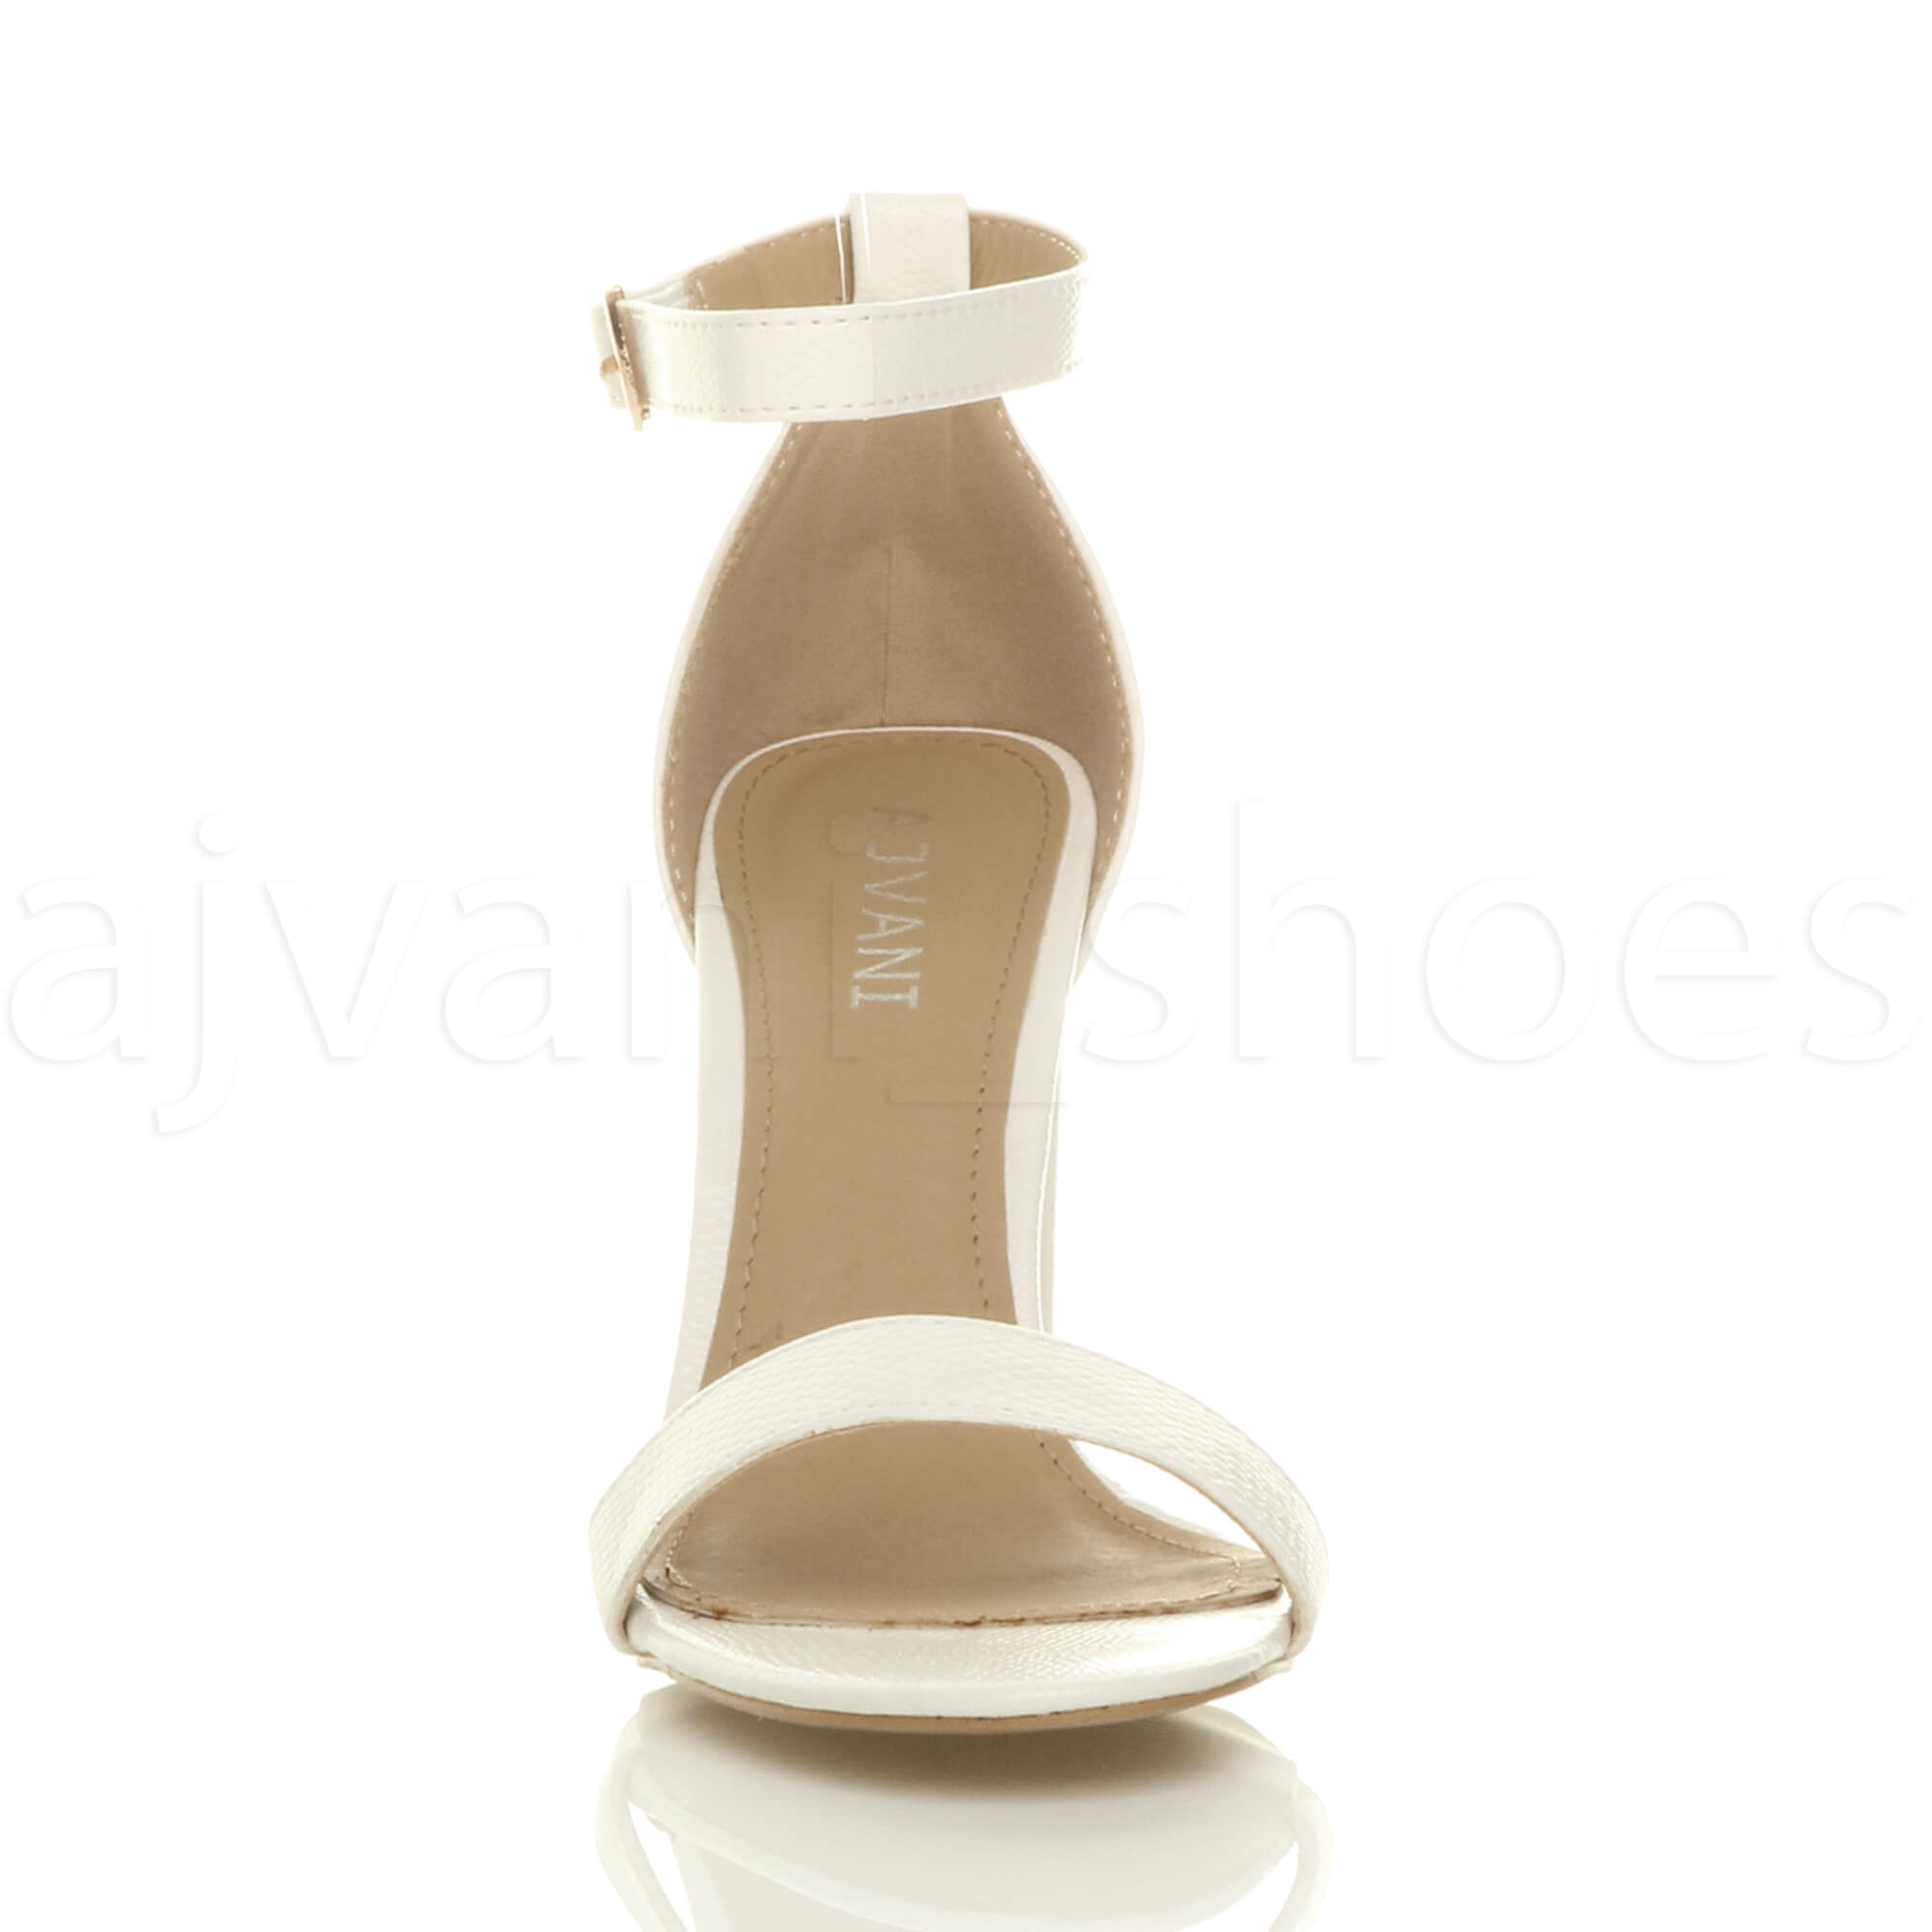 WOMENS-LADIES-BLOCK-HIGH-HEEL-ANKLE-STRAP-PEEP-TOE-STRAPPY-SANDALS-SHOES-SIZE thumbnail 164